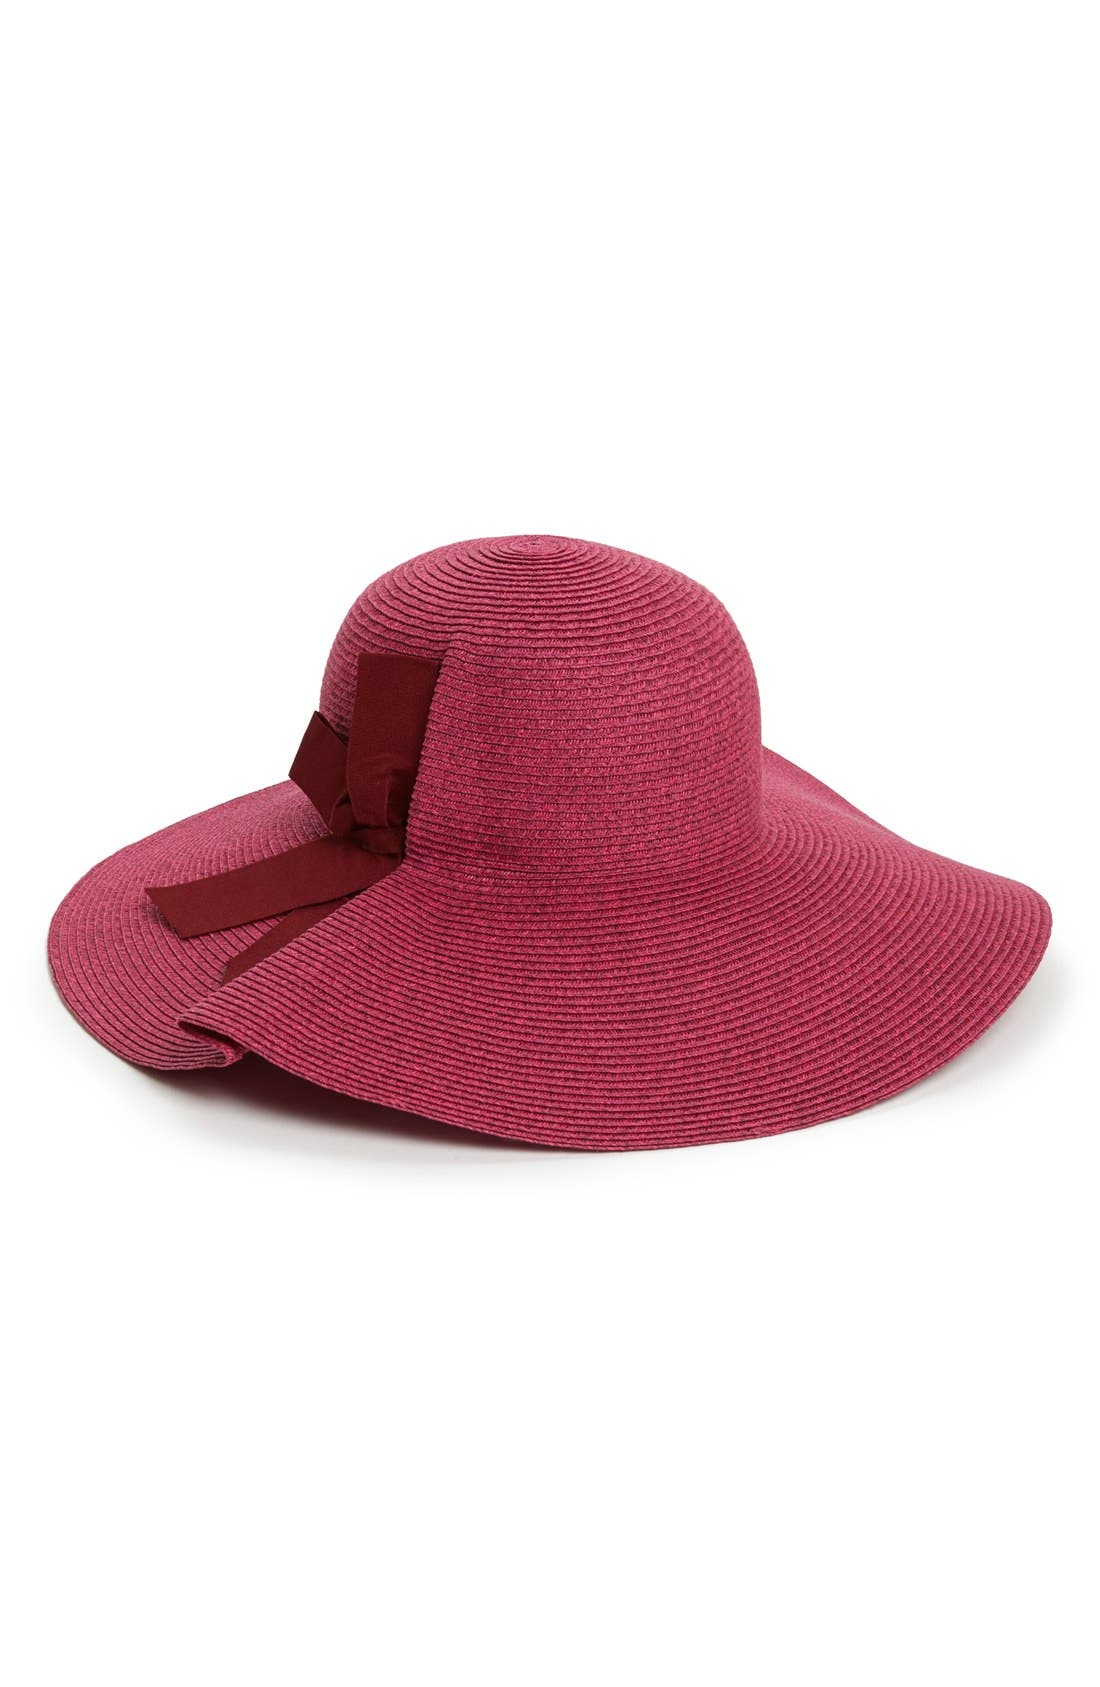 Alternate Image 1 Selected - Jessica Simpson Side Bow Floppy Hat